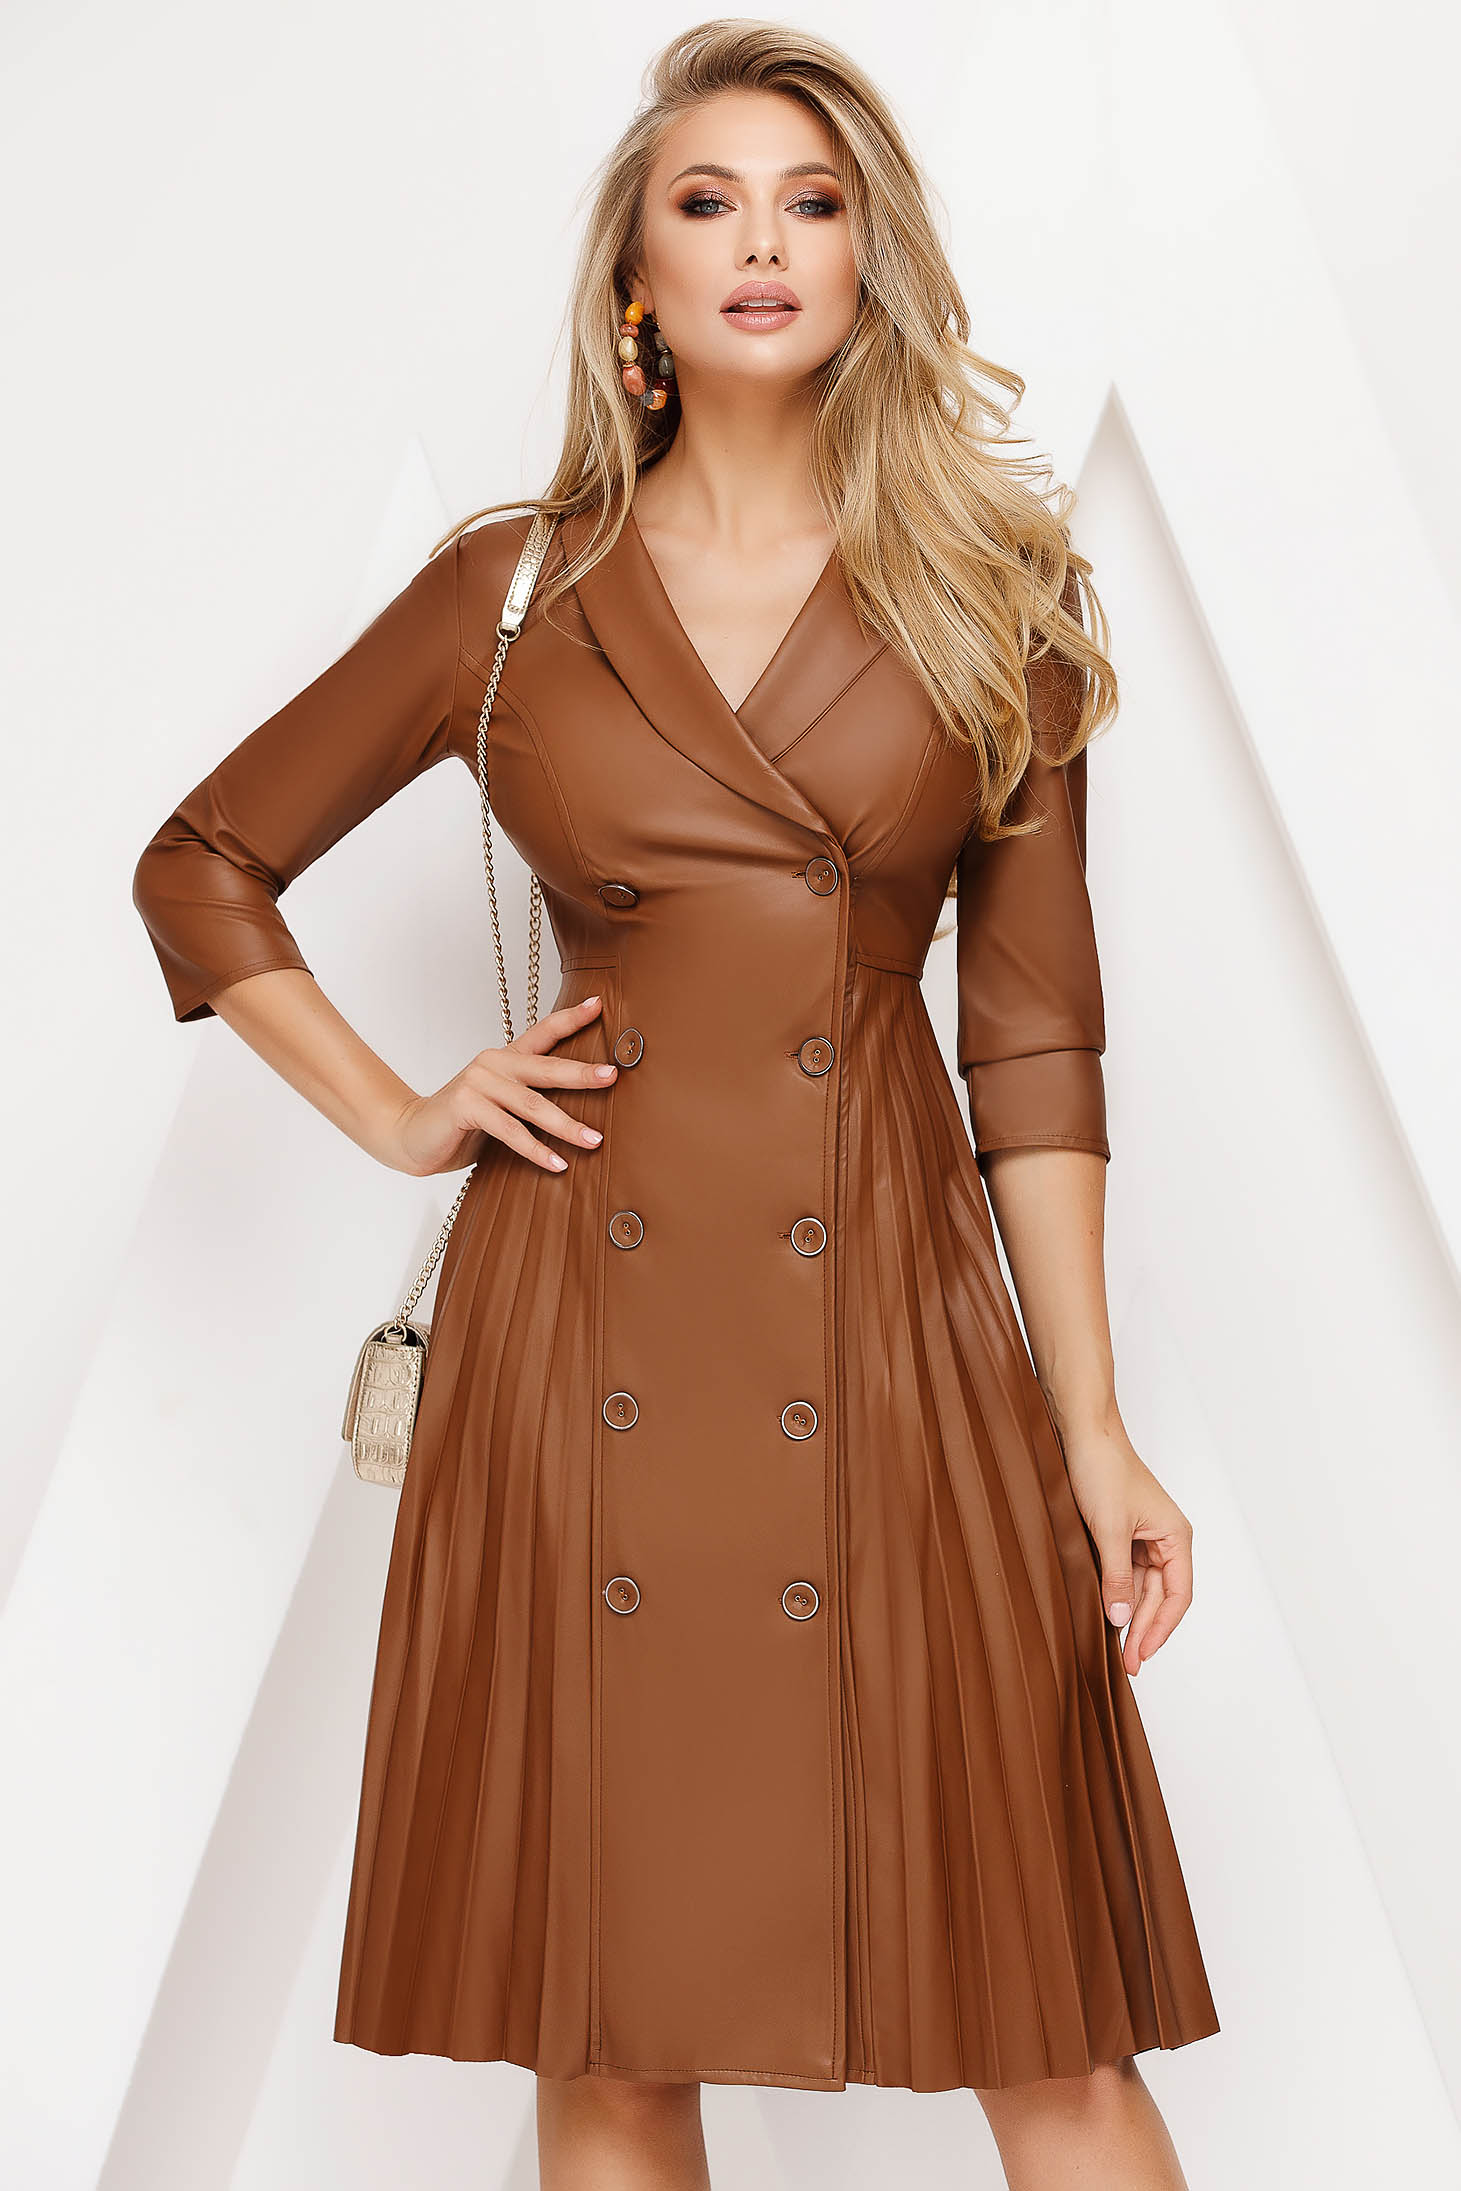 Dress brown midi folded up daily from ecological leather cloche